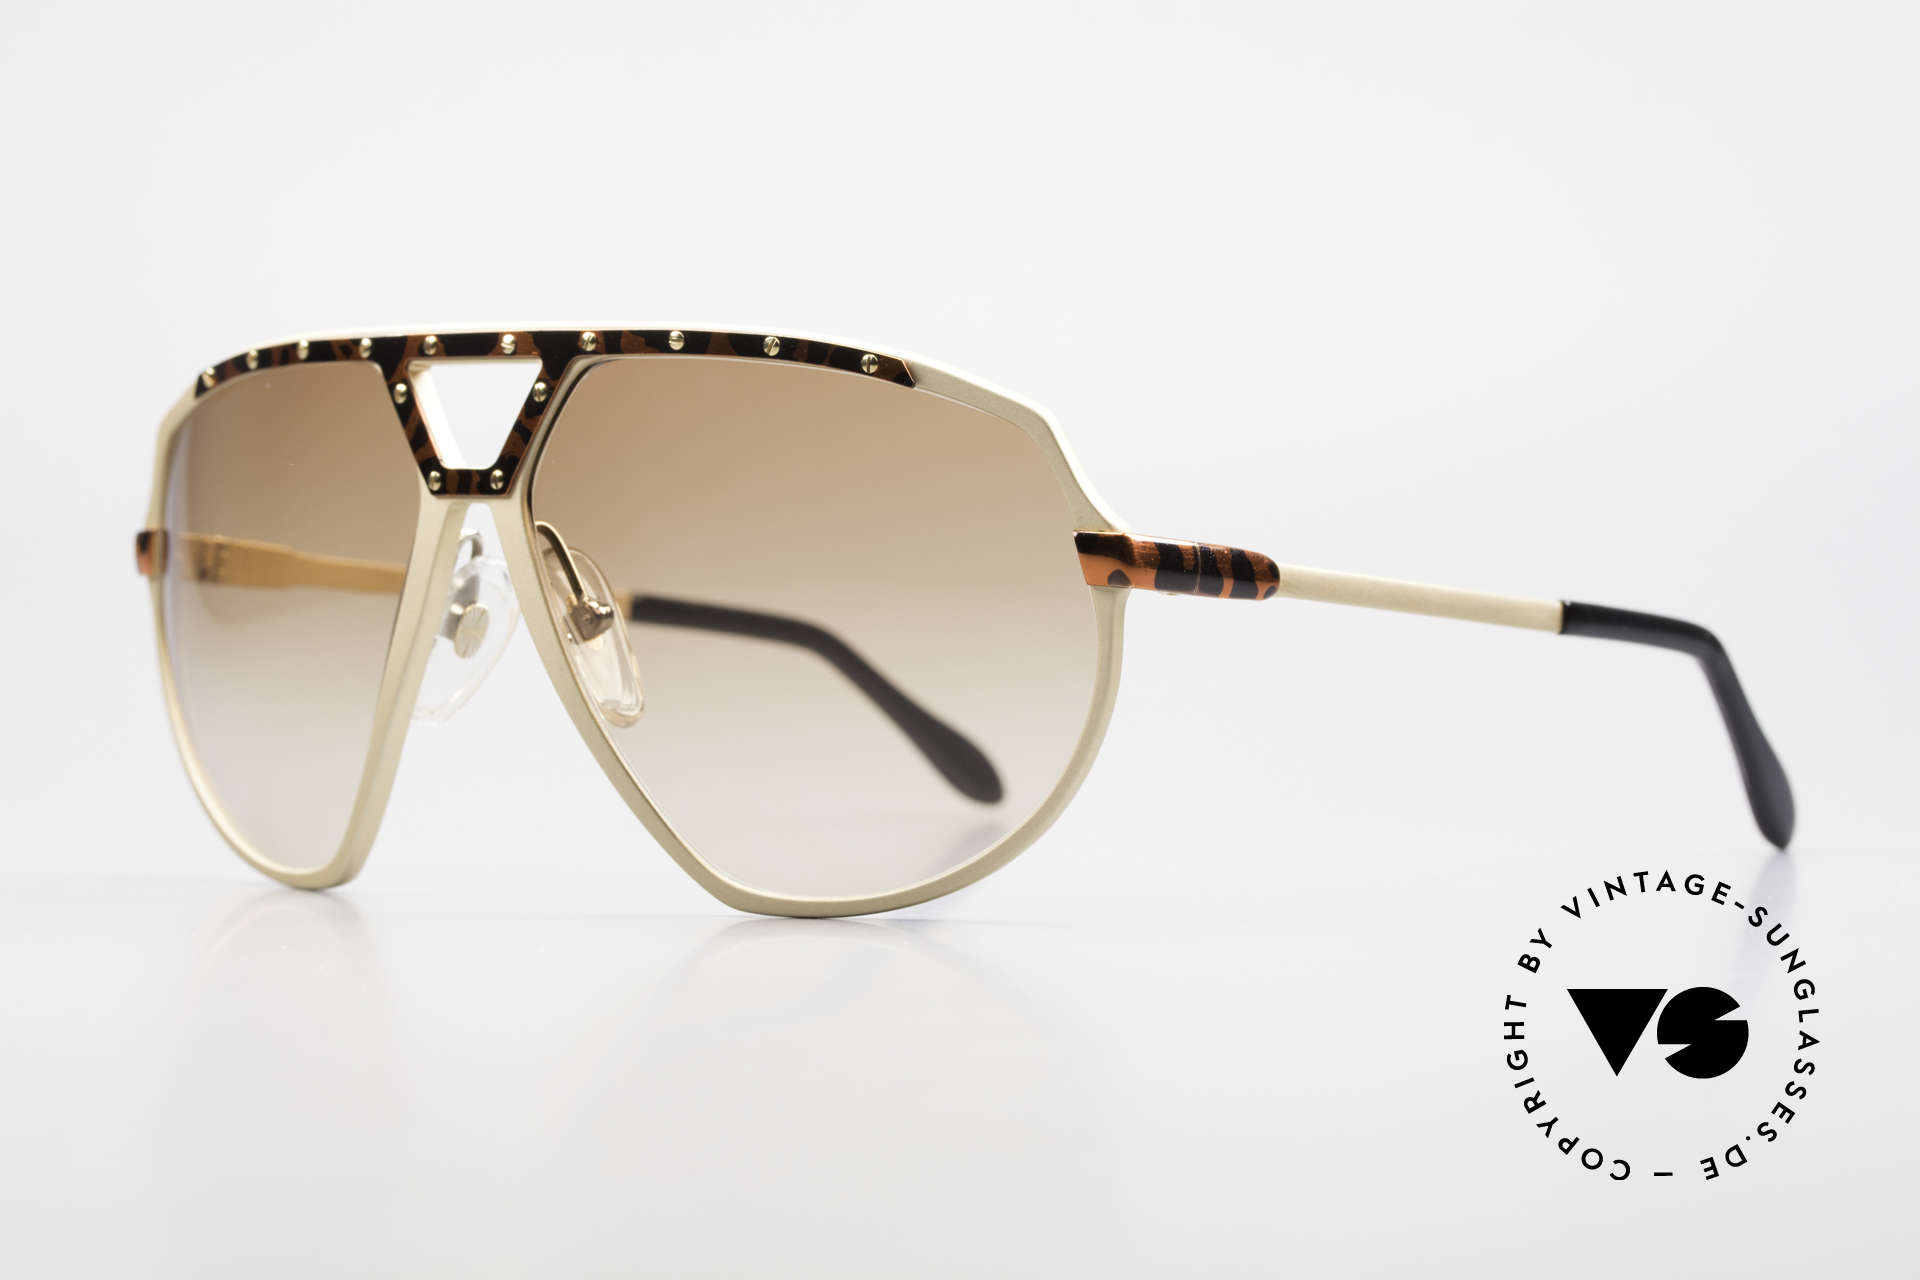 Alpina M1/8 80's West Germany Sunglasses, W.Germany frame with 14 screws (collector's item), Made for Men